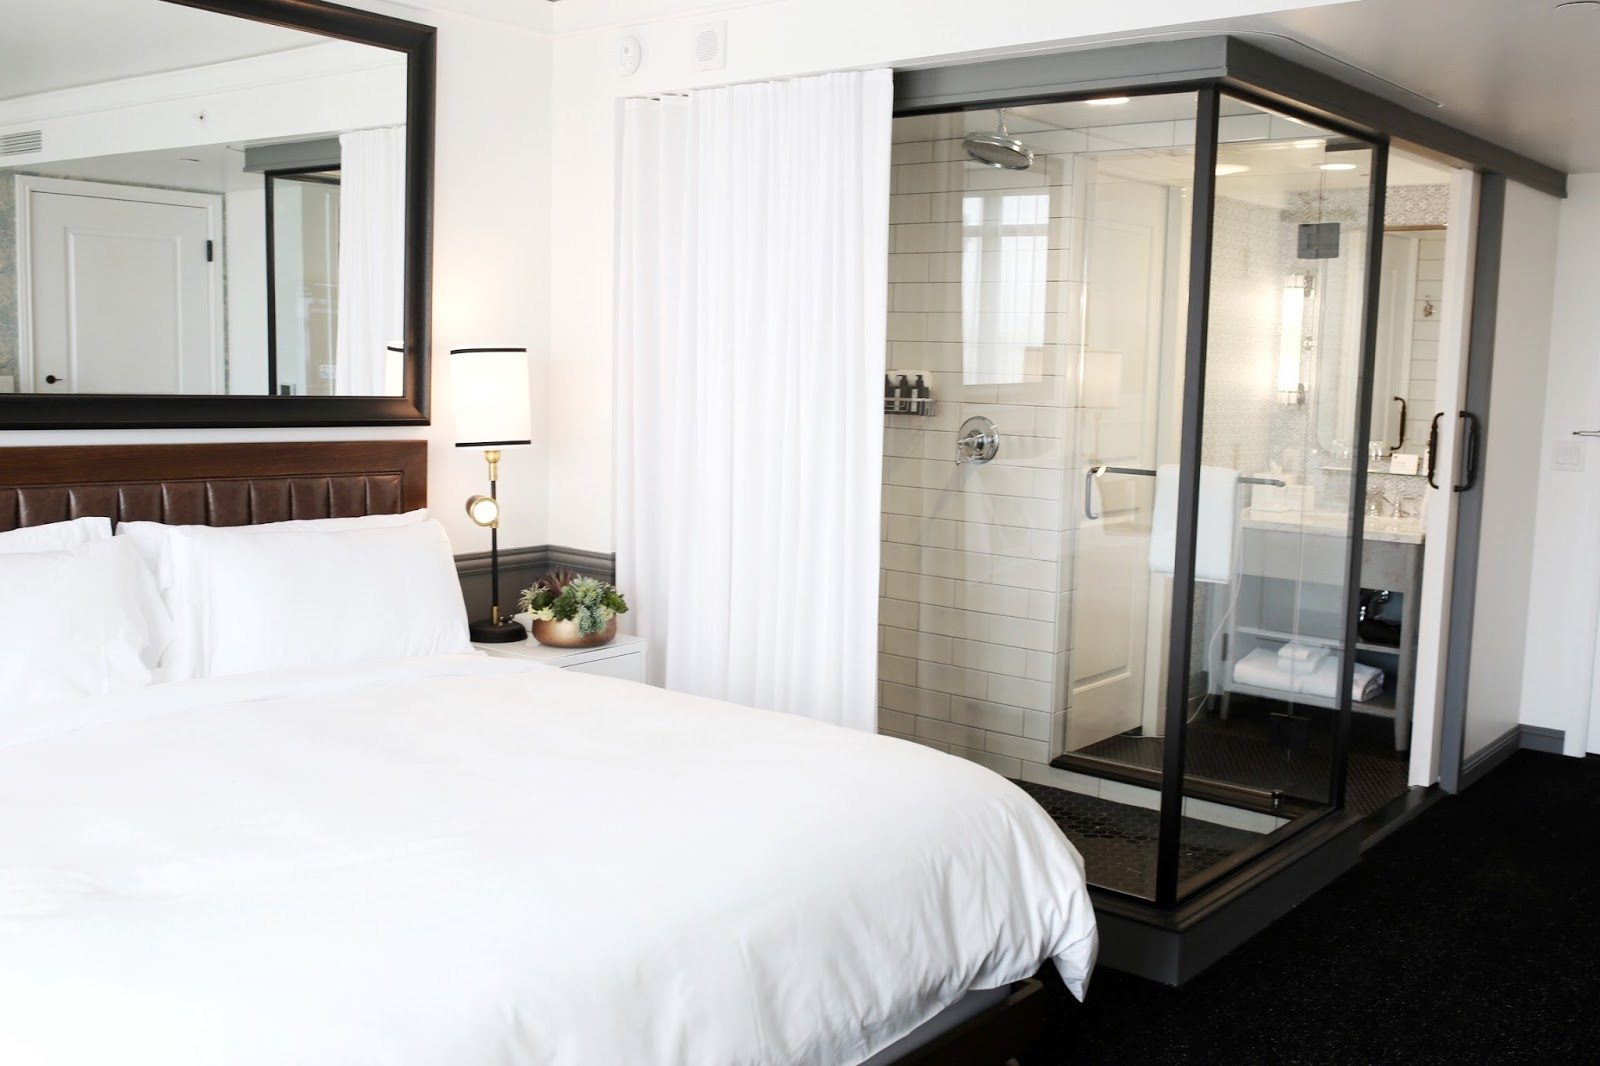 Pendry Hotel Review: Where To Stay In San Diego - Gypsy Tan